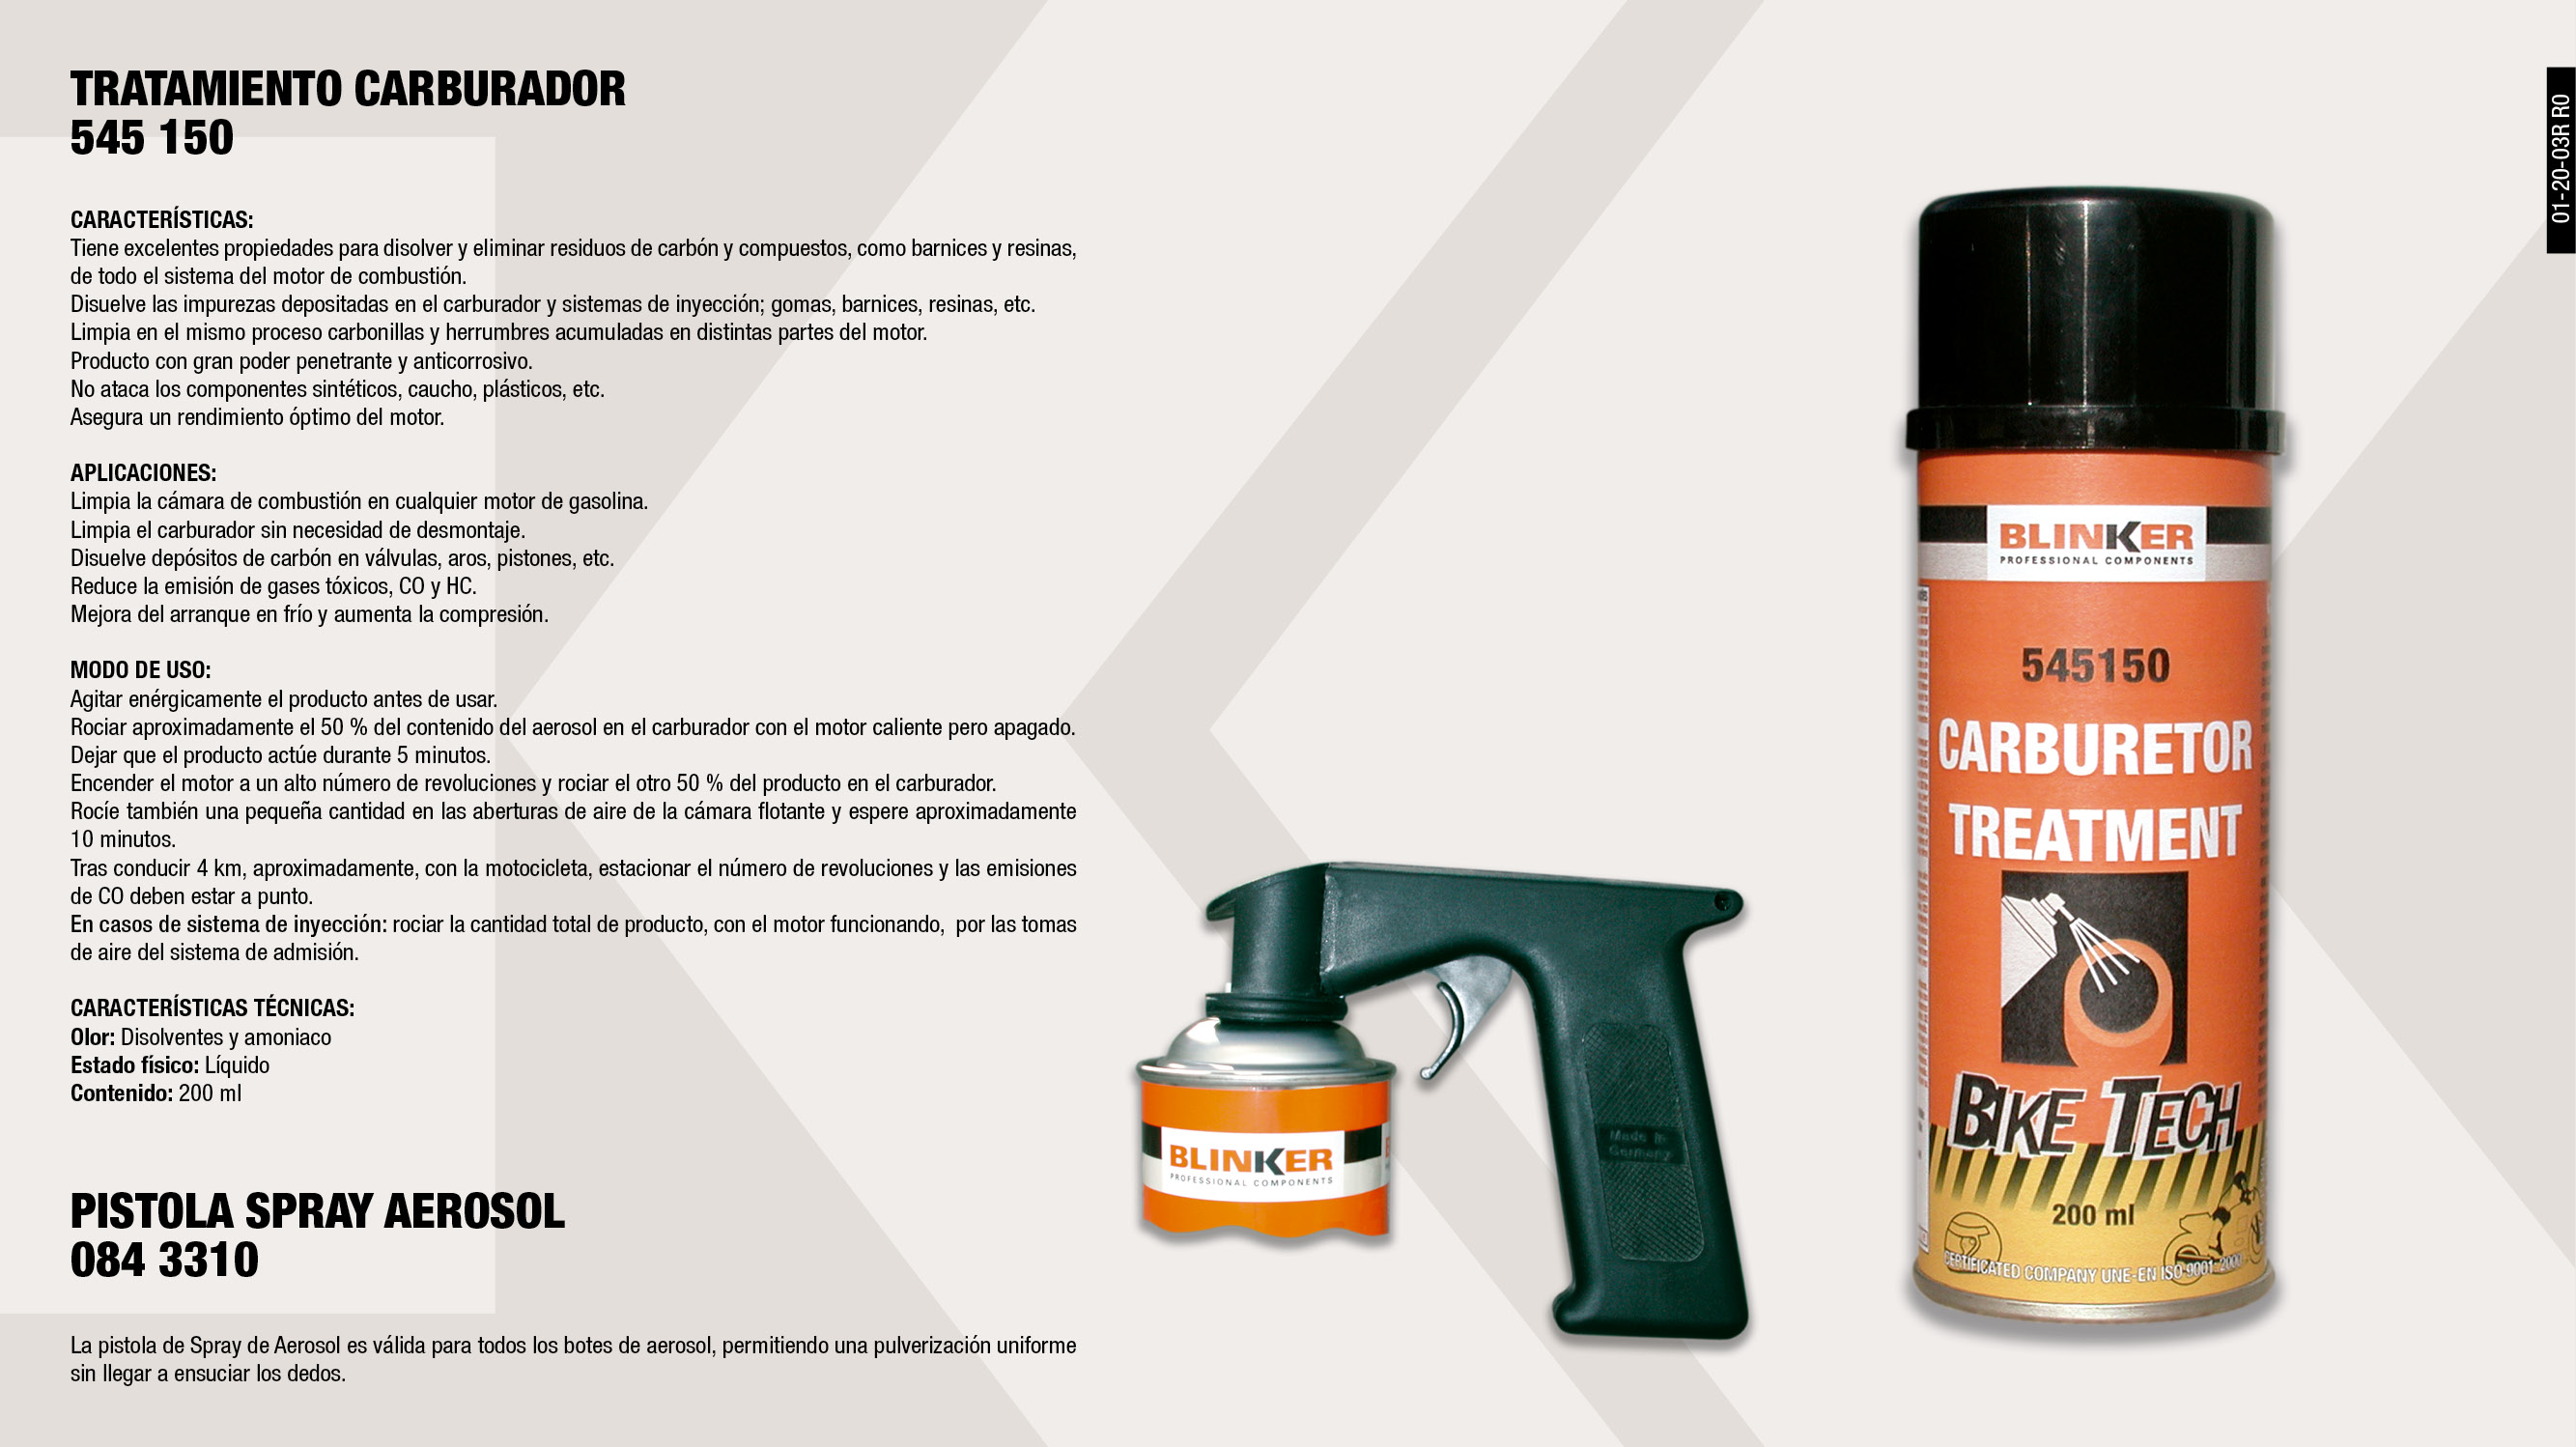 TRATAMIENTO CARBURADOR 200ML                                ,  									PISTOLA SPRAY AEROSOL                                       ,